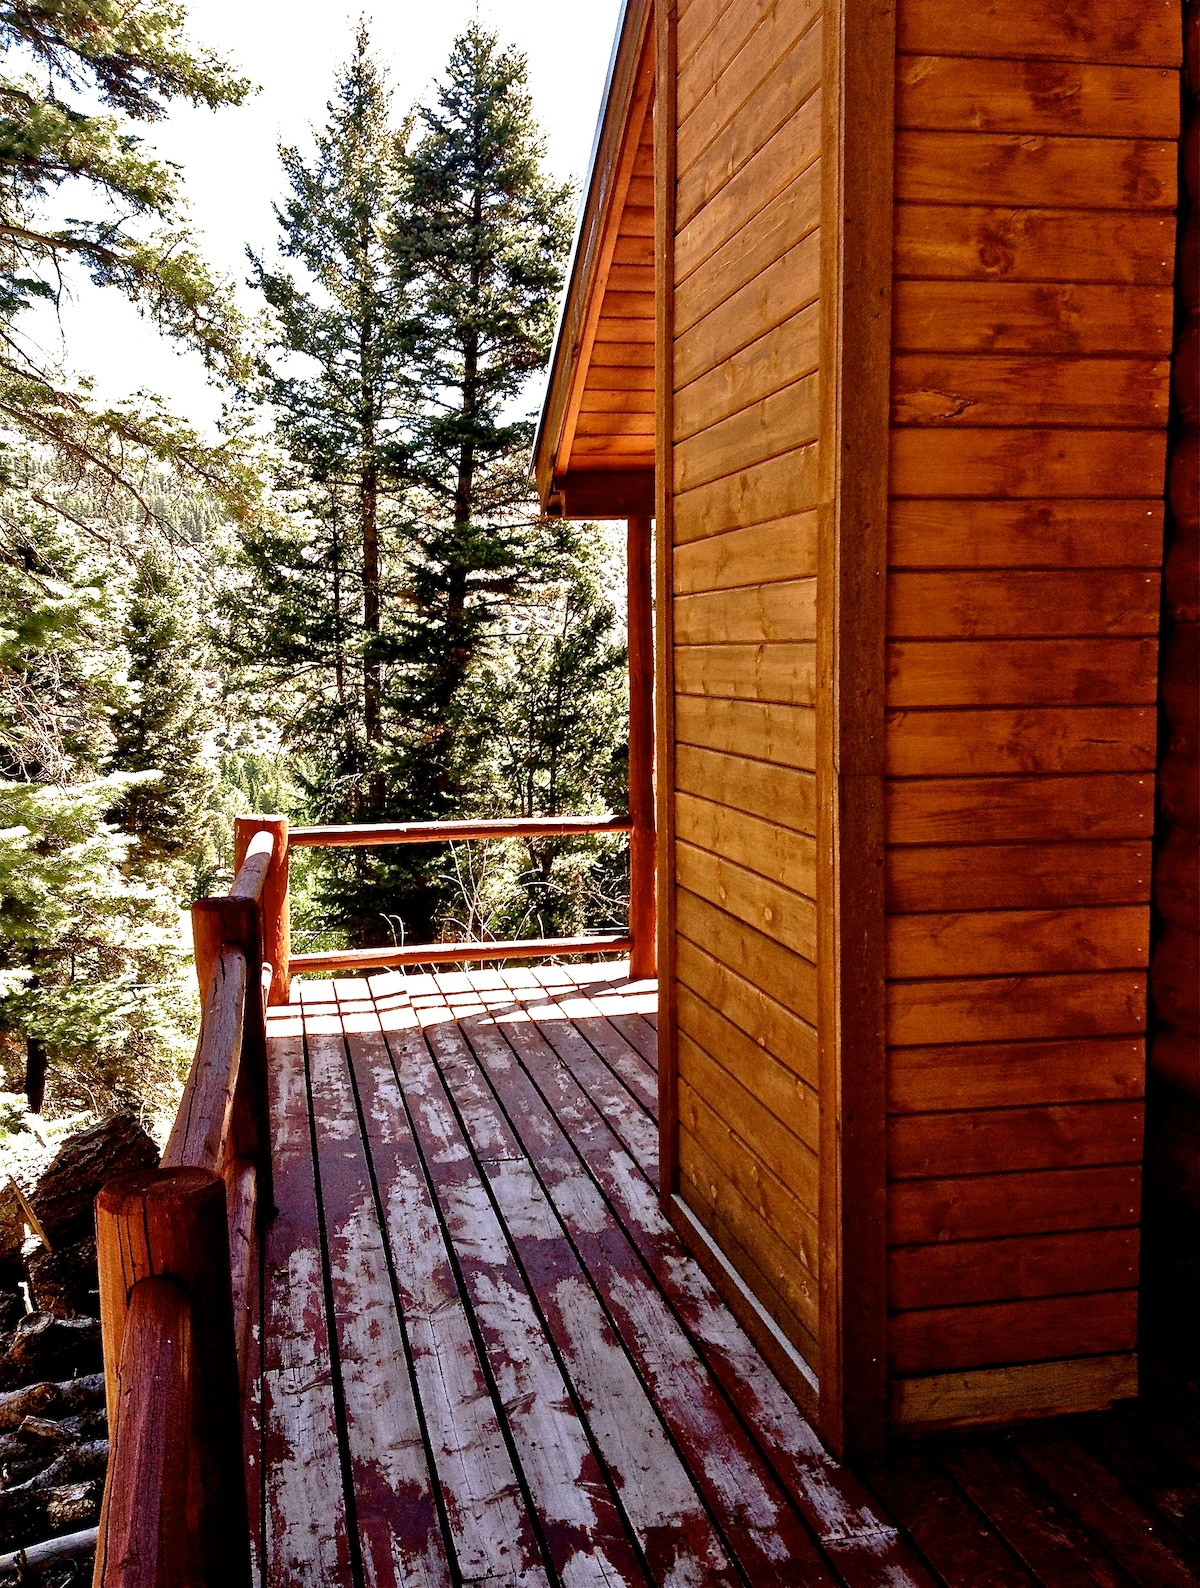 Wrap around porch with views of the pines, aspen and canyon beyond.